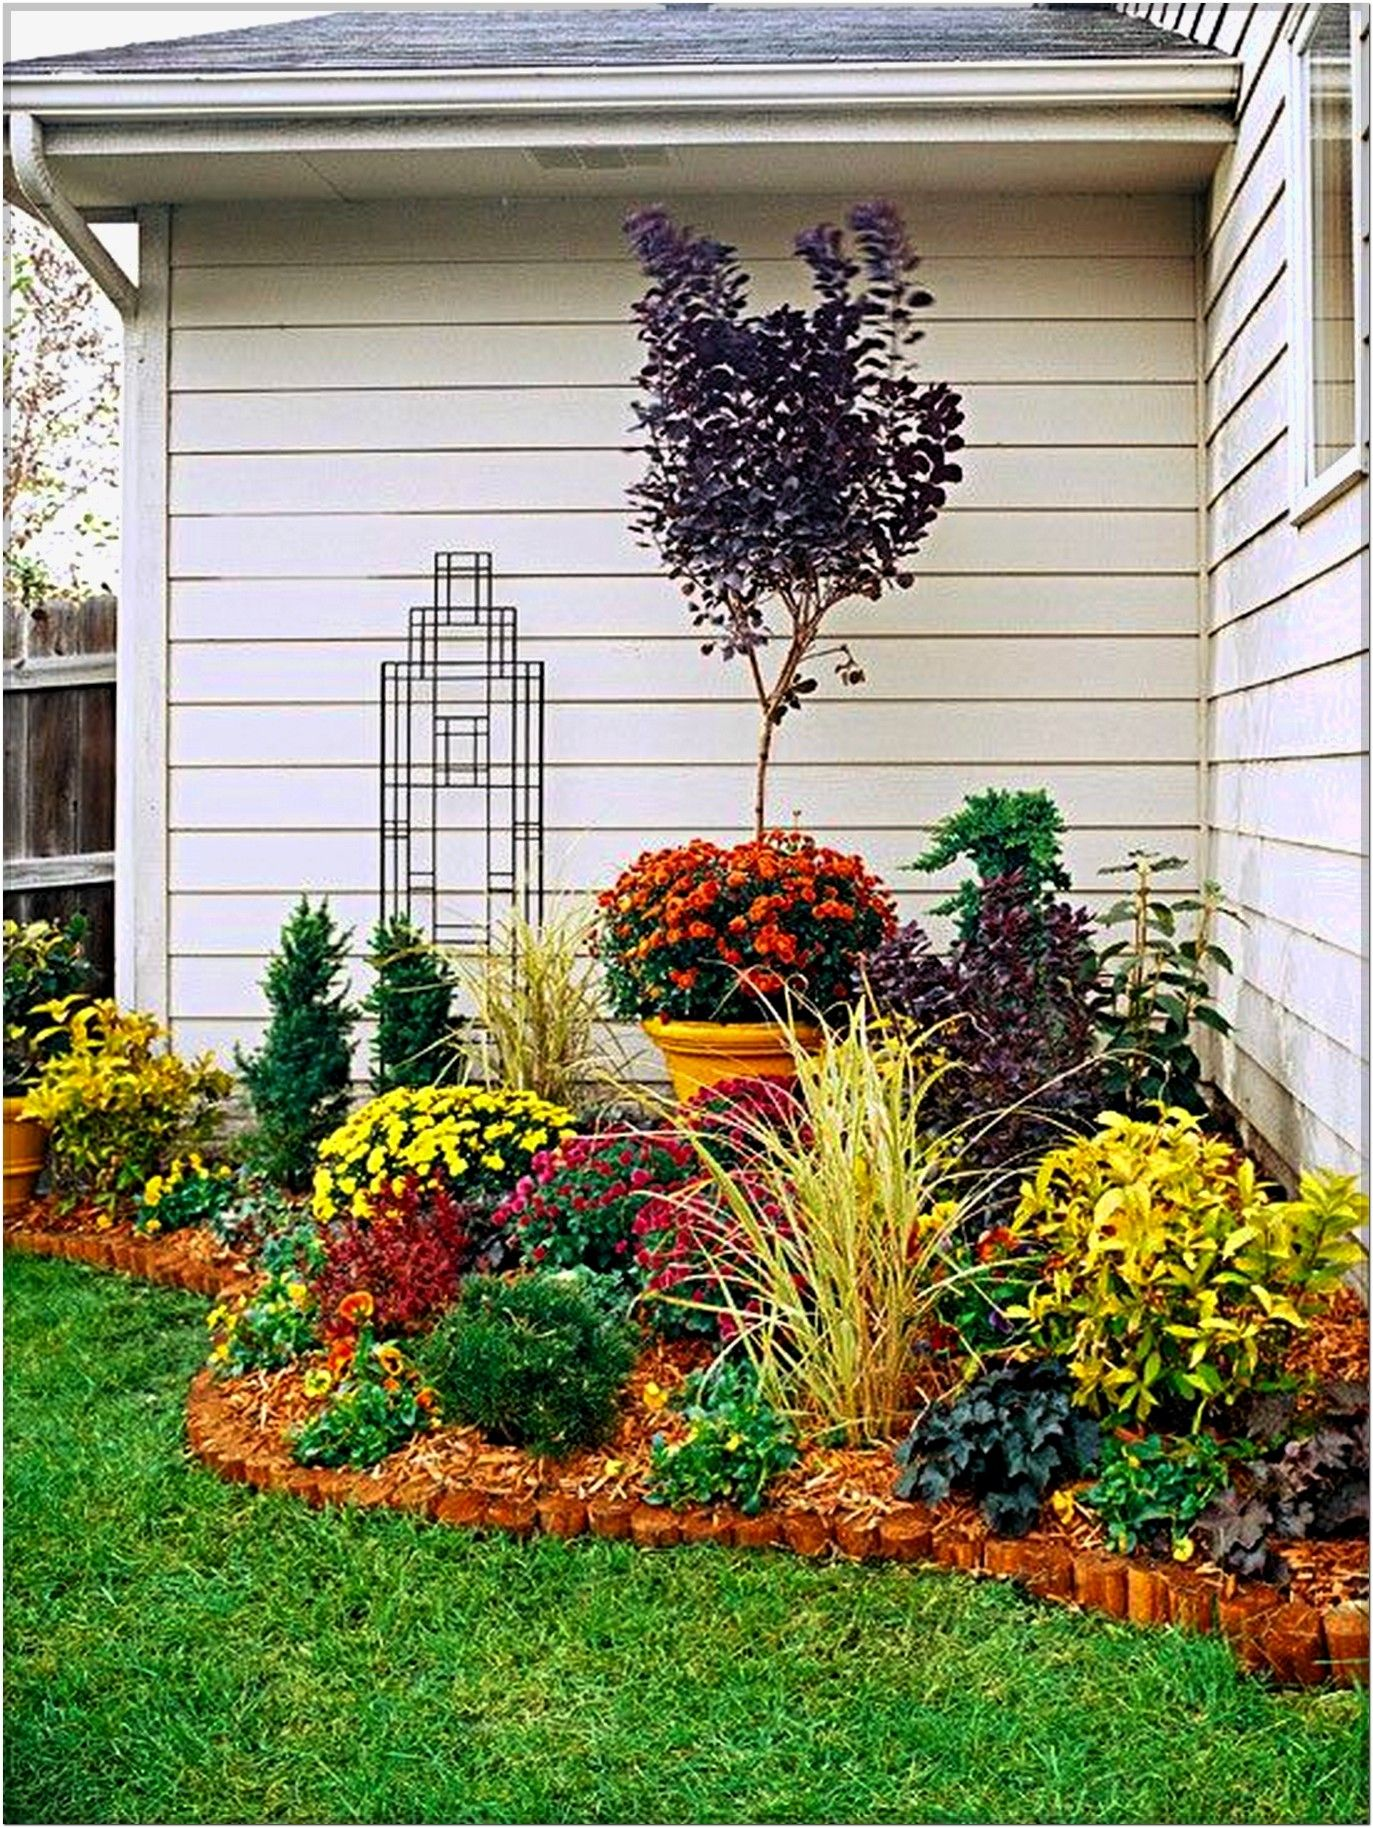 Incroyable Small Corner Garden Design DIY, Do It Yourself On A Budget Garden Design In  Alongside